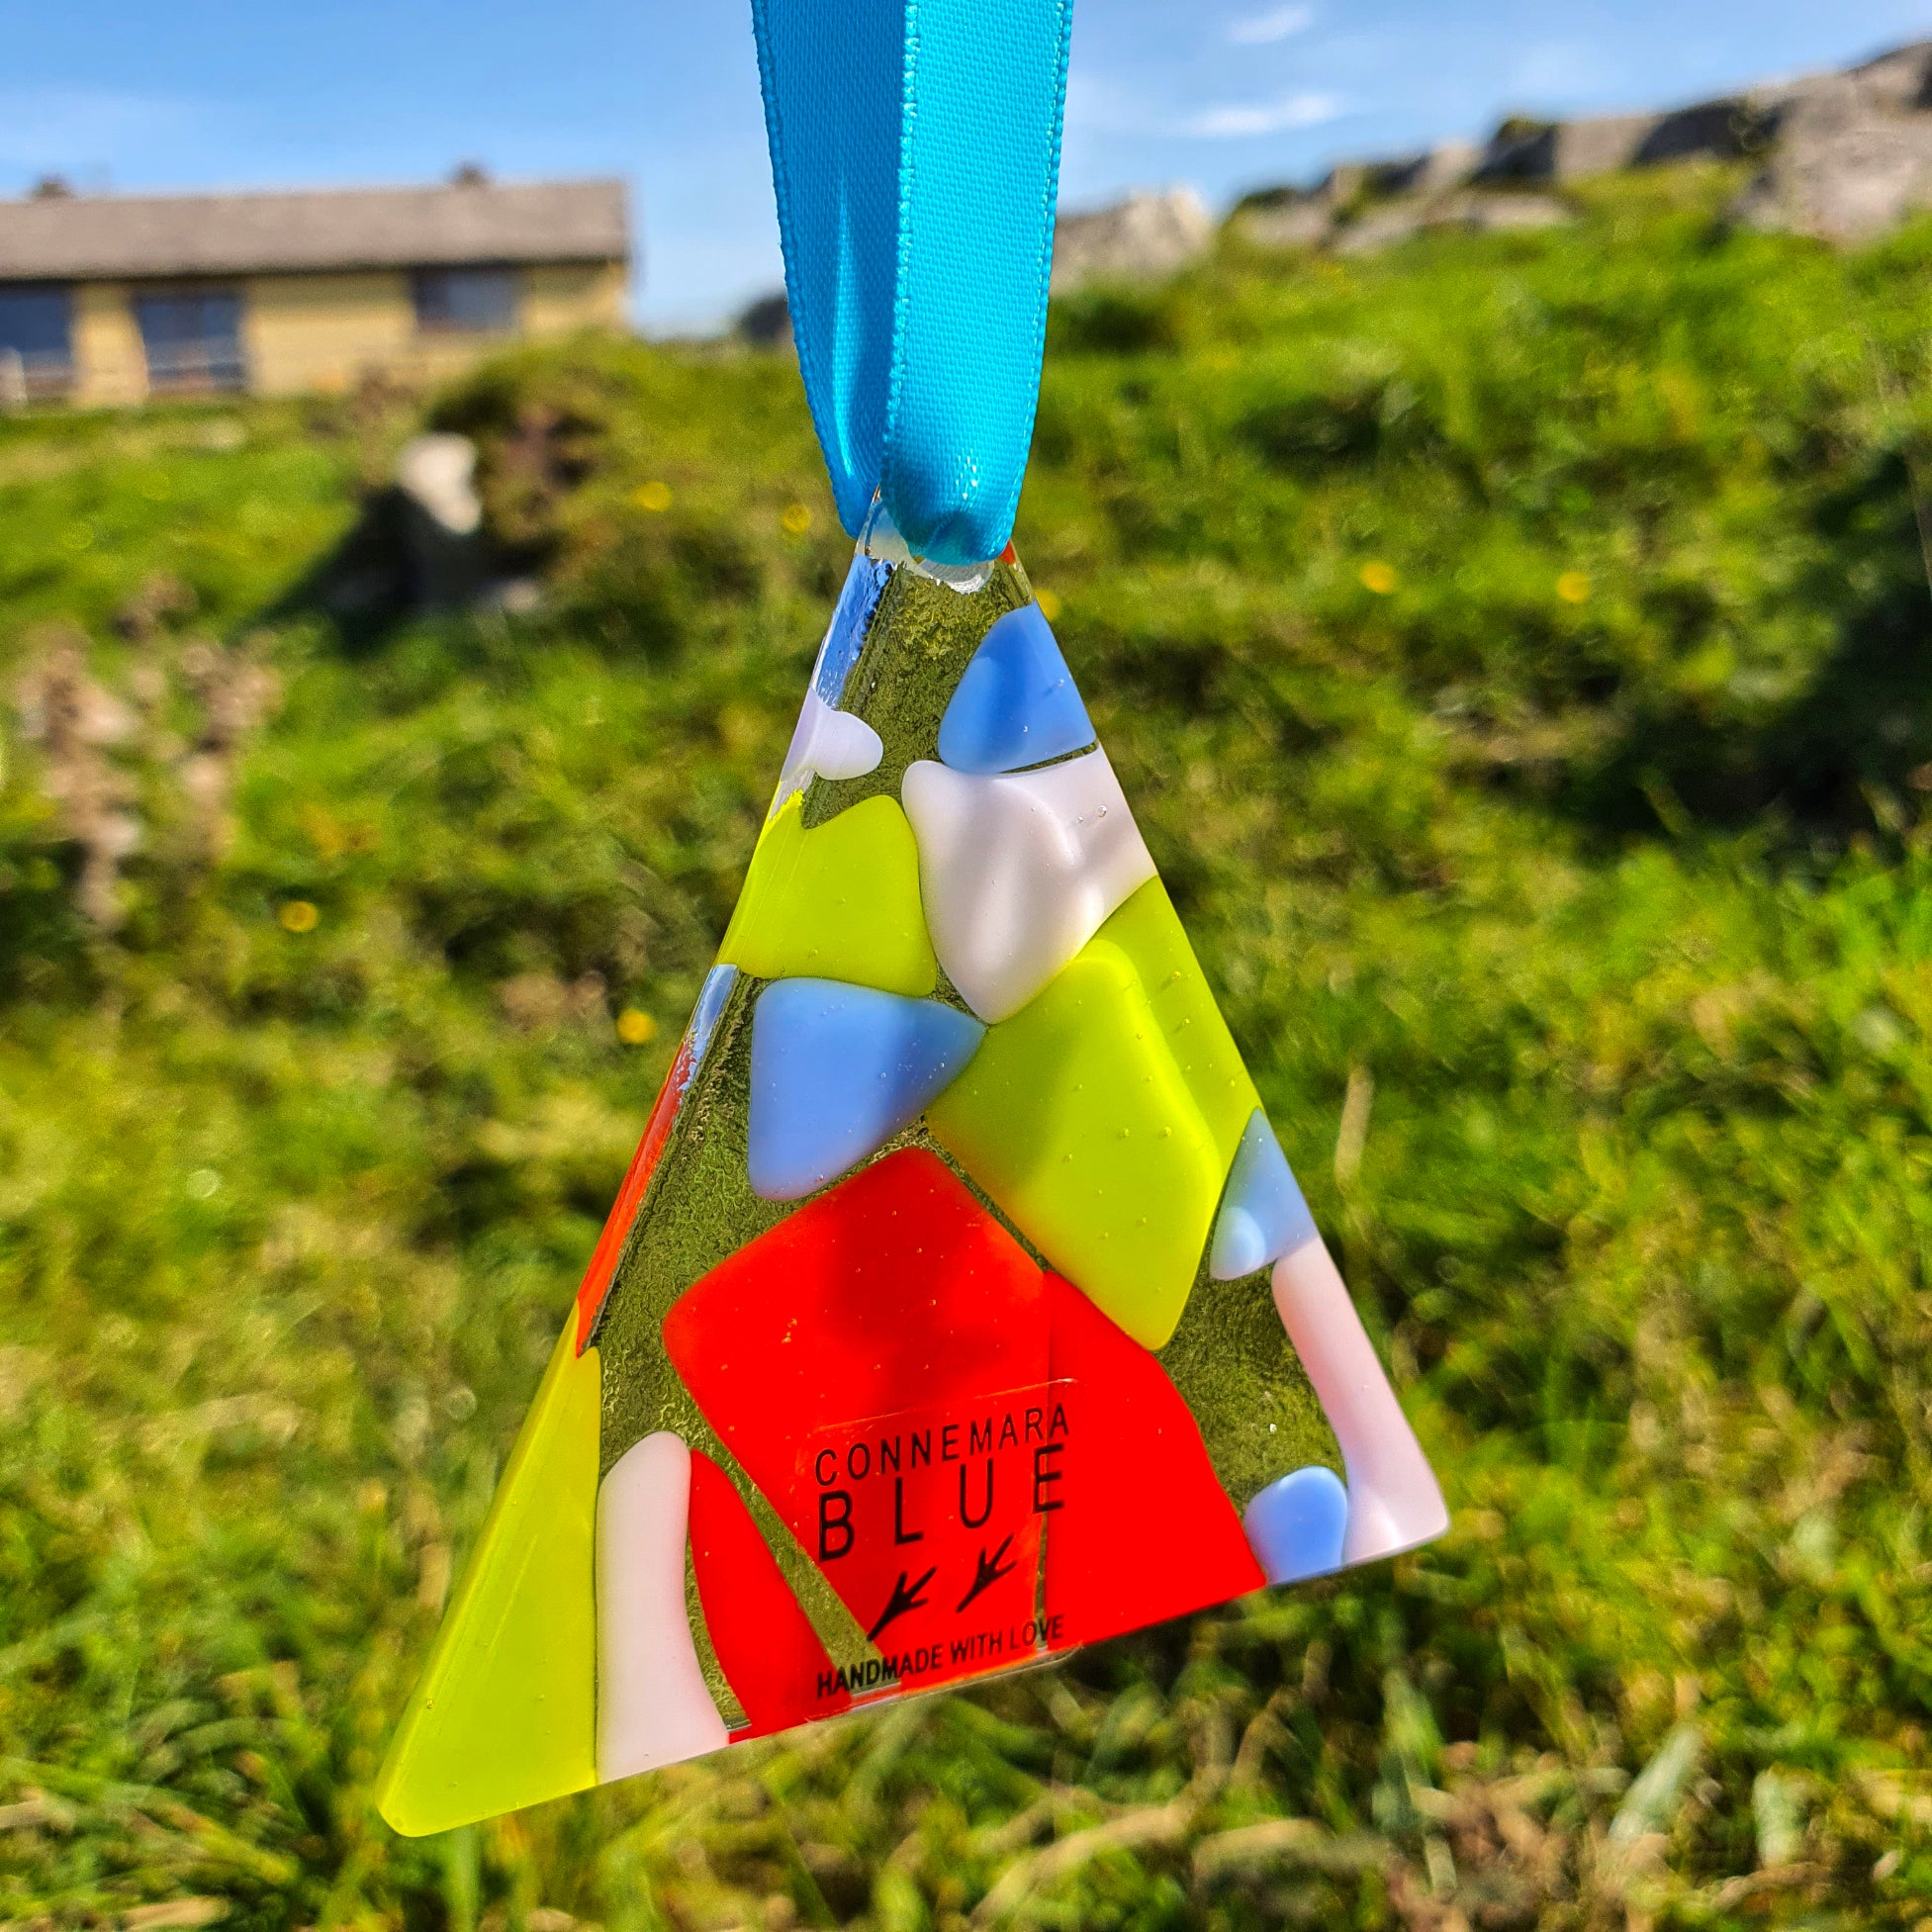 A multicoloured fused glass hanging decoration in a triangle shape, handmade by Connemara Blue